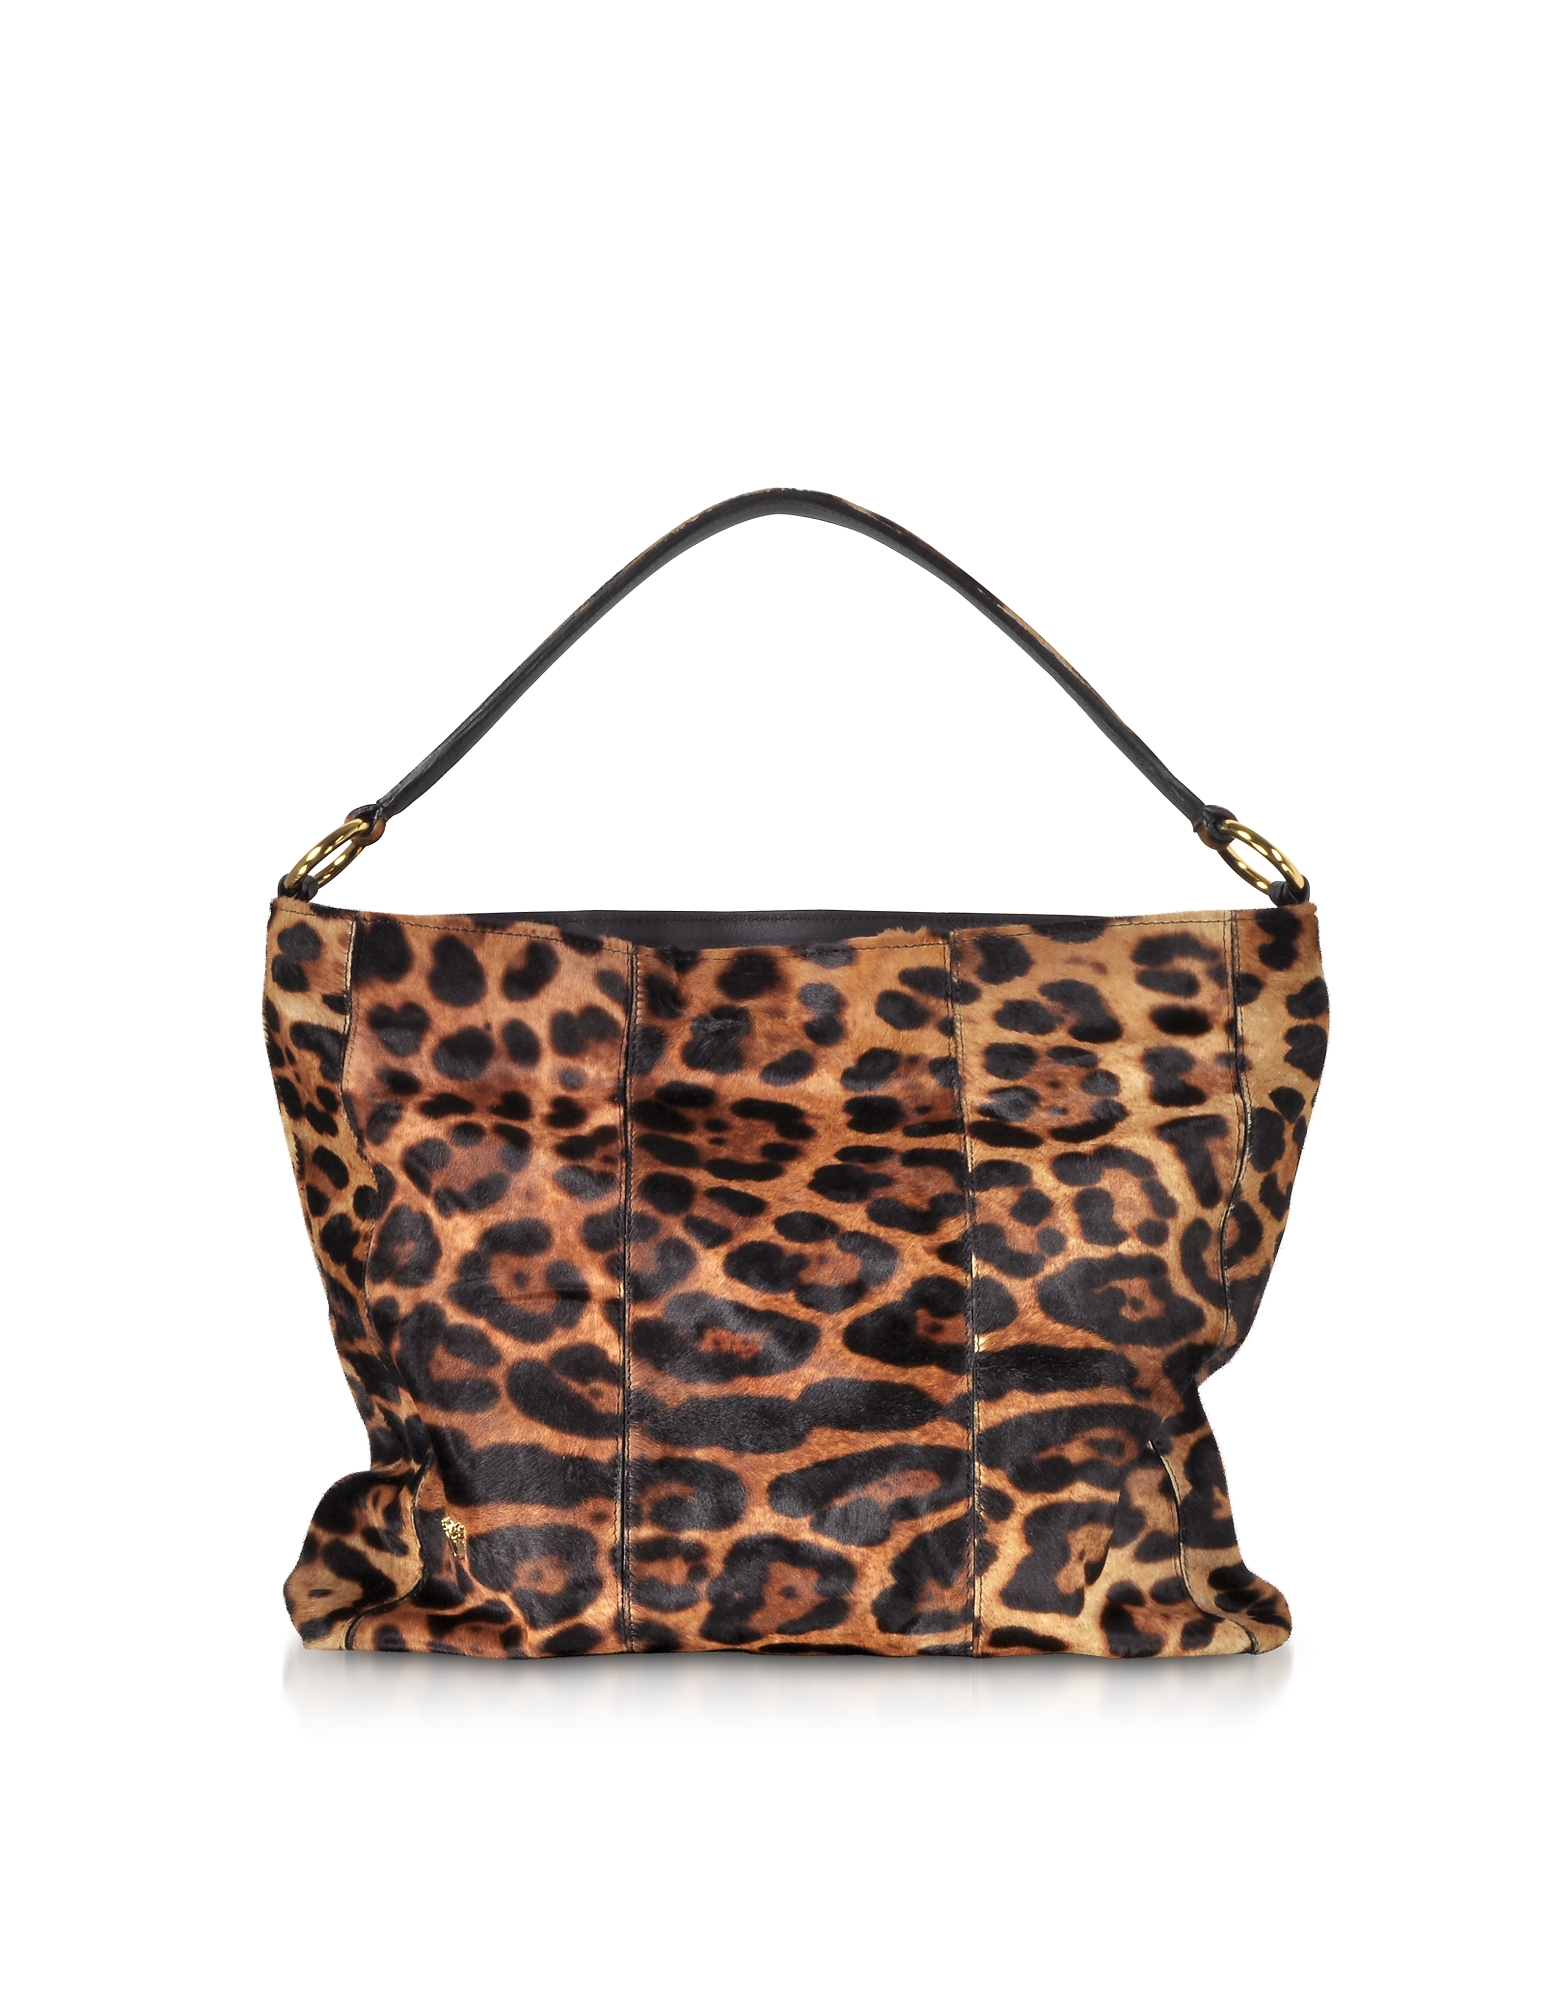 Leopard Printed Haircalf Leather Shoulder Bag